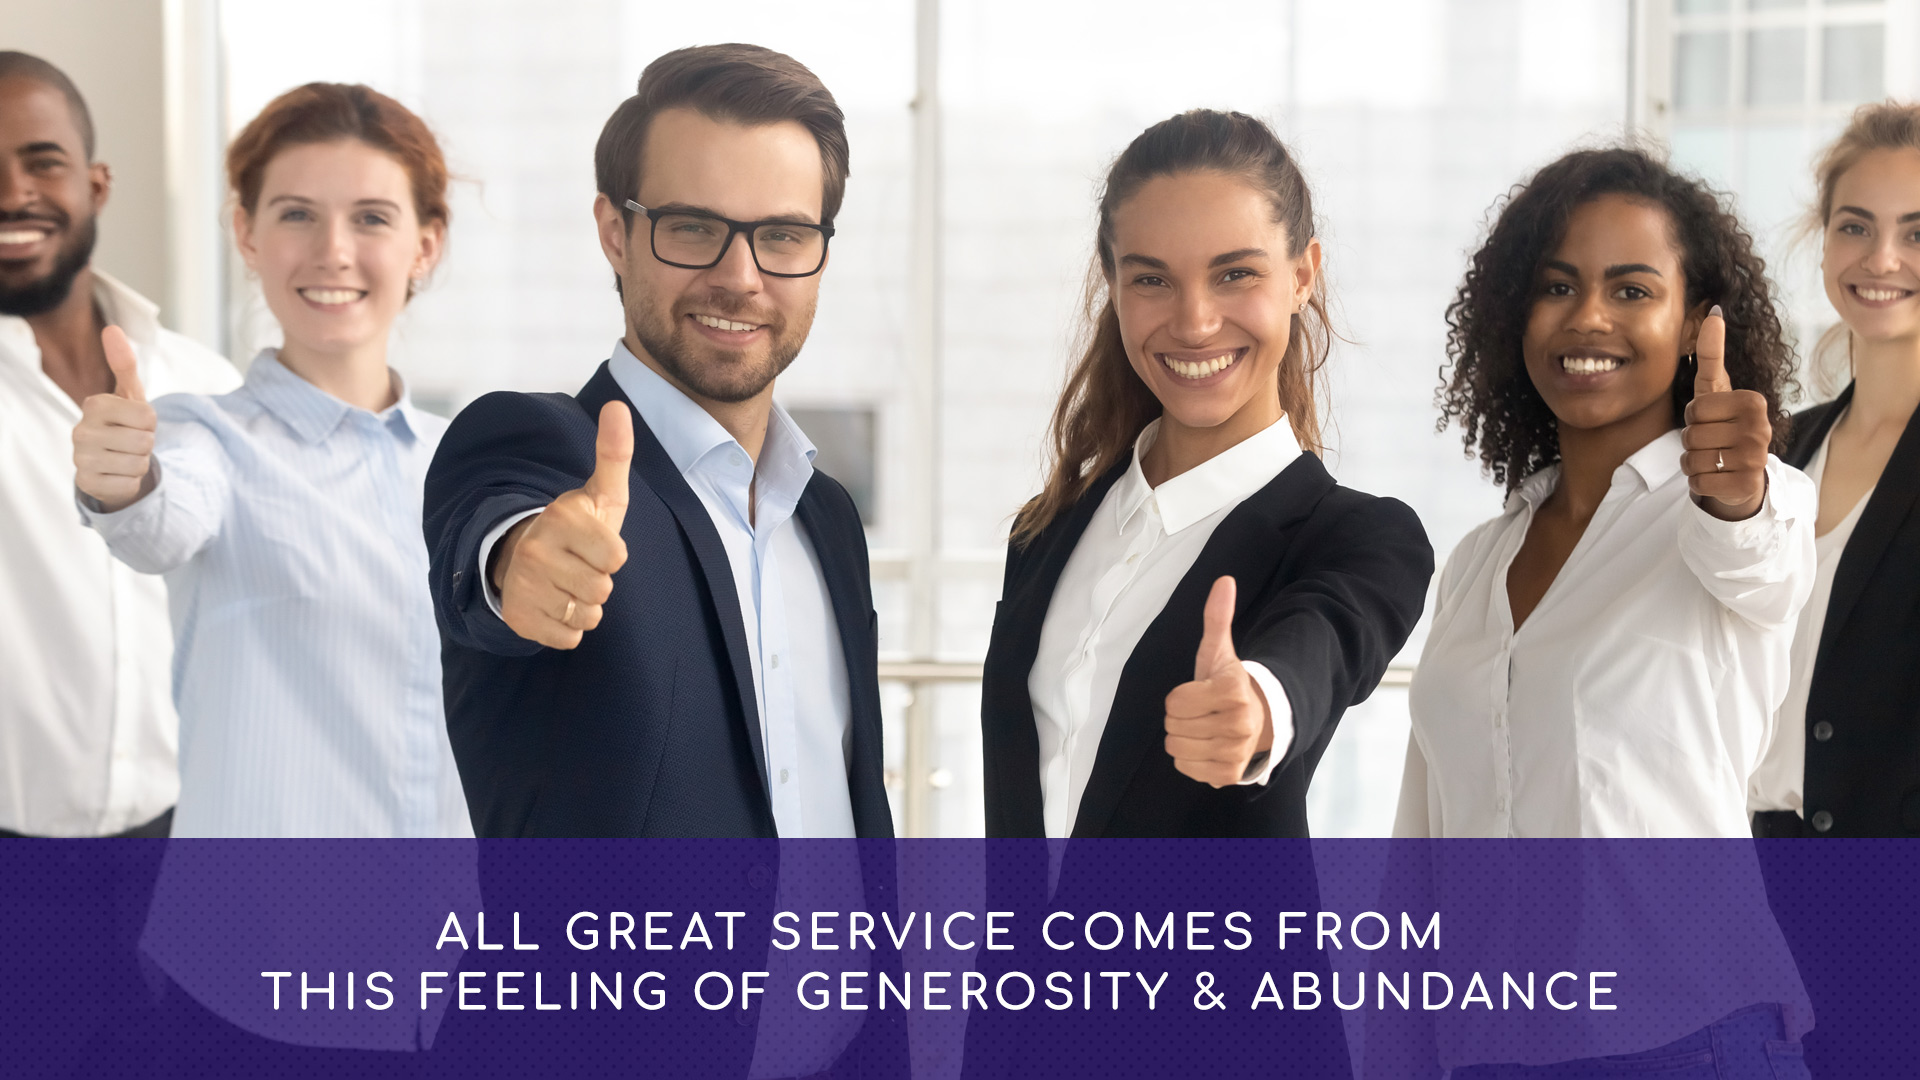 All great service comes from this feeling of generosity and abundance.